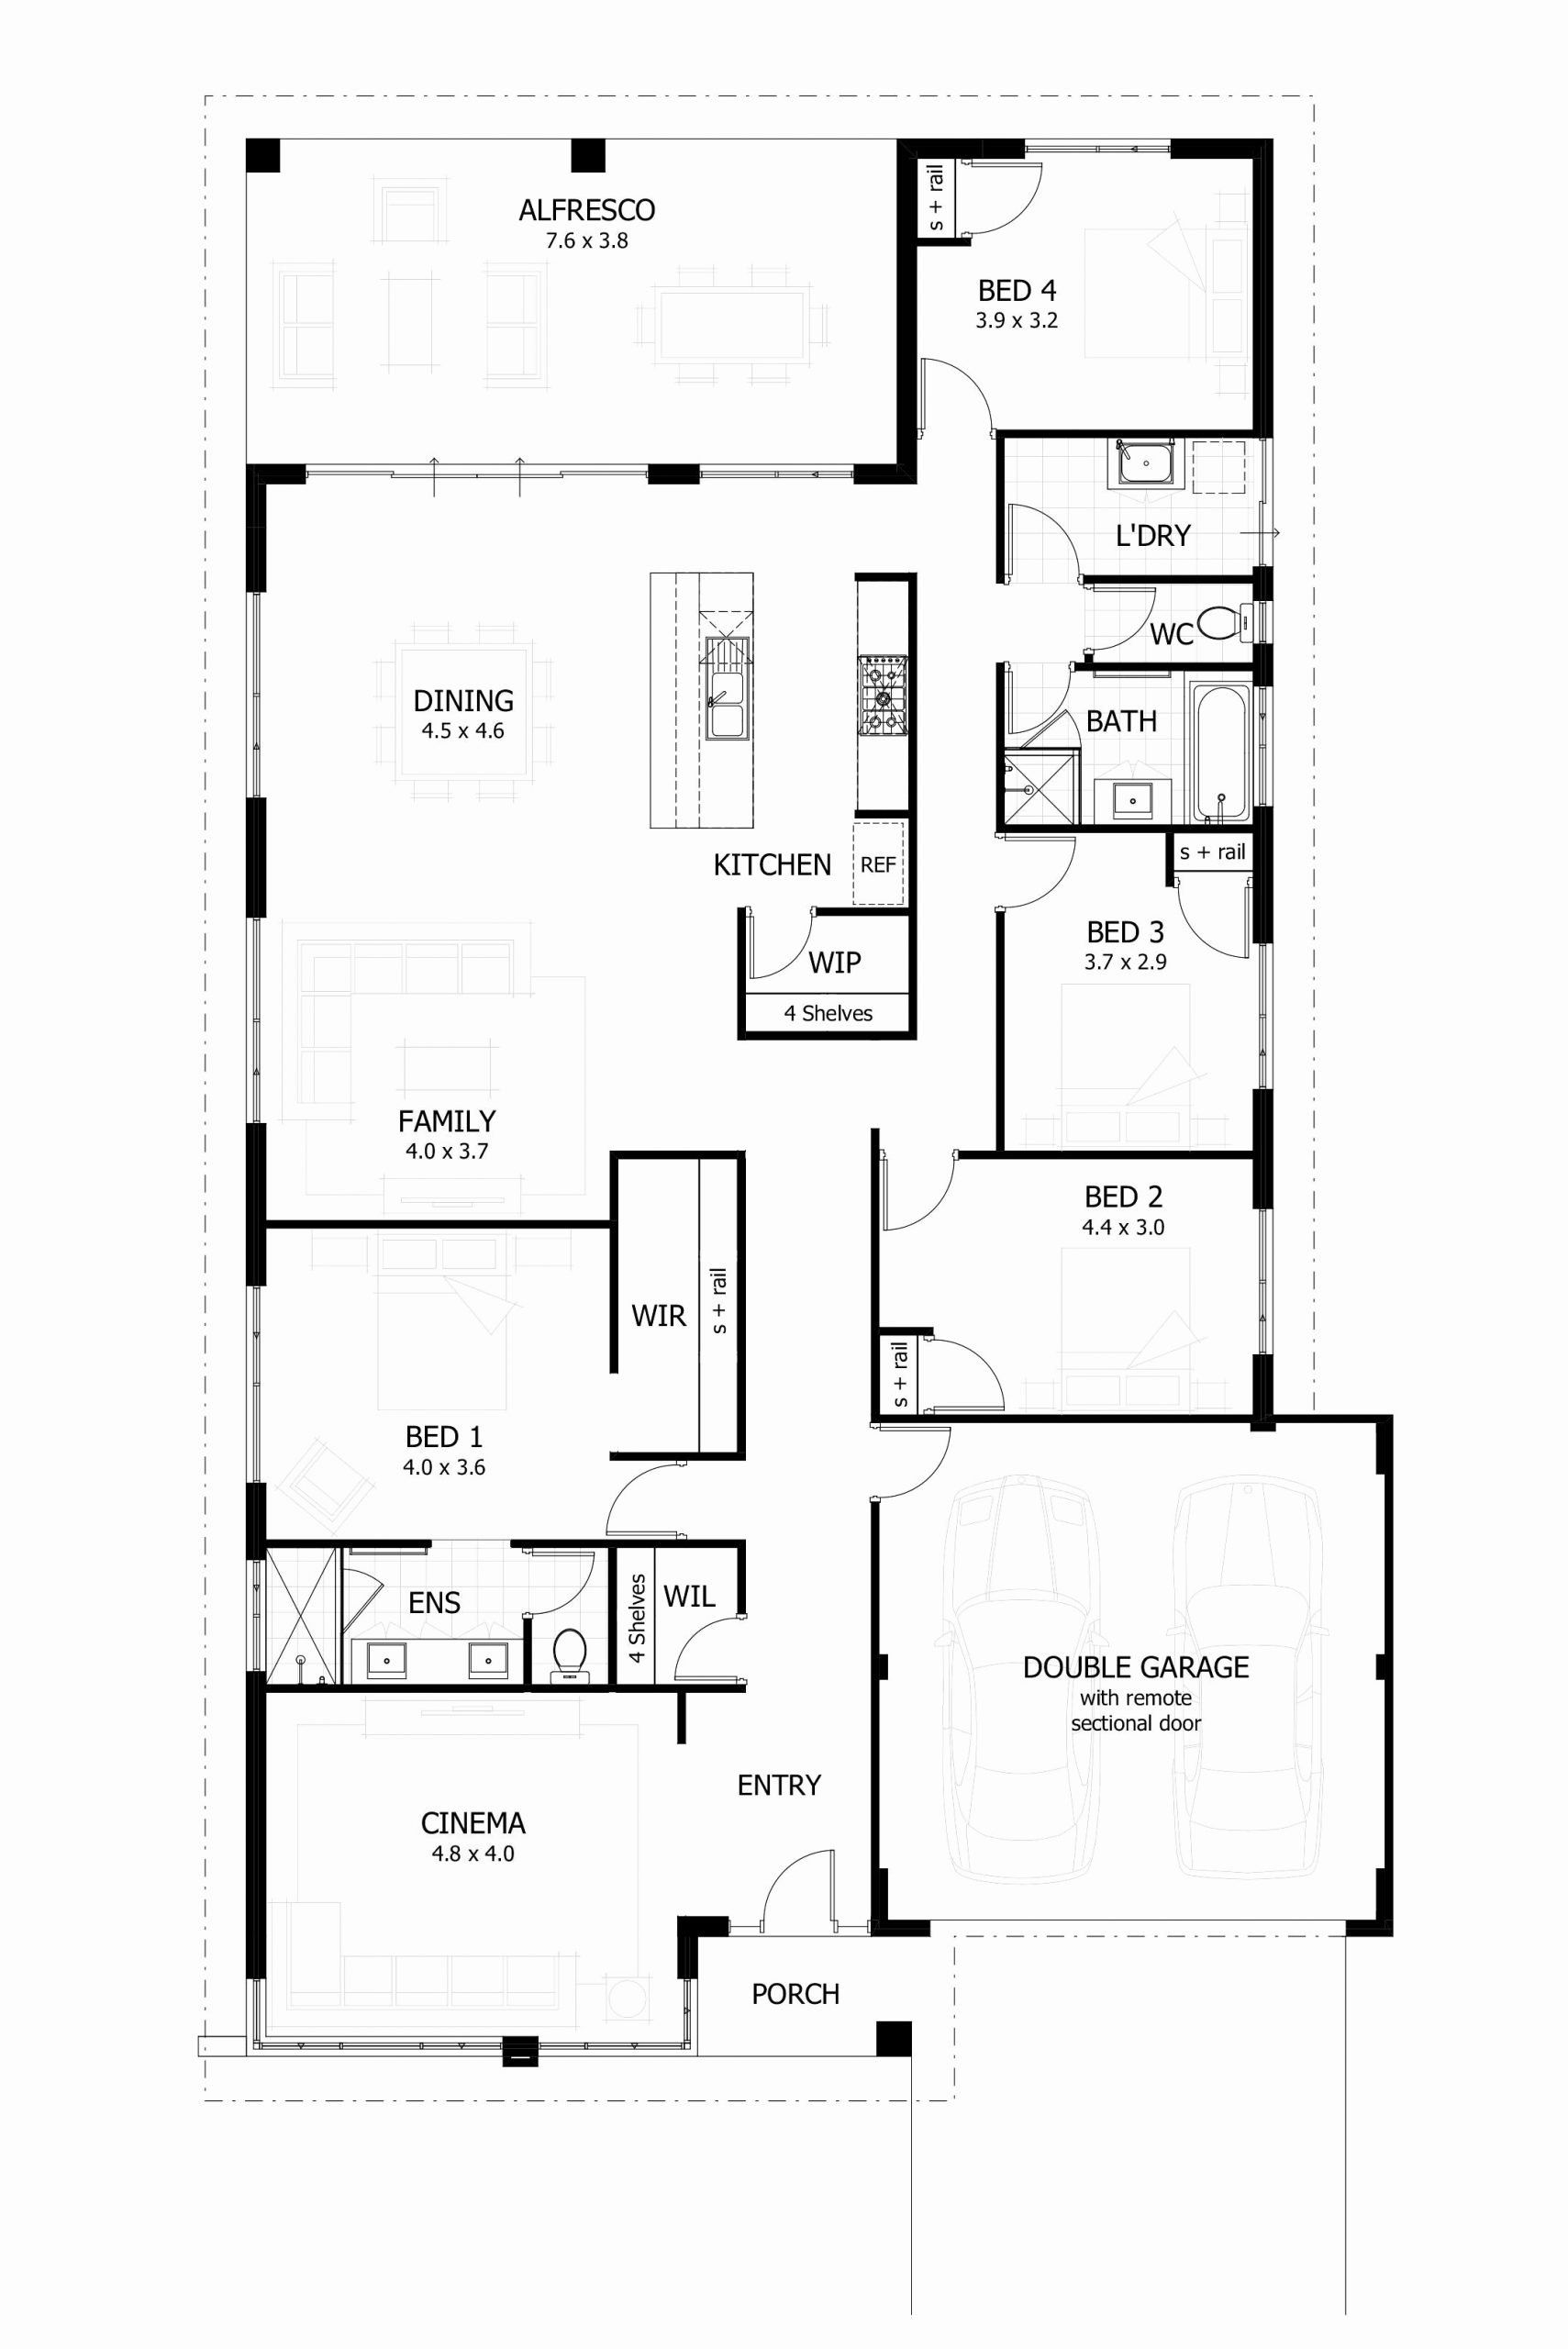 Free 4 Bedroom House Plans Unique Beautiful 4 Bedroom House Plans Pdf Free Download Unique Home Design Floor Plans House Plans Australia 4 Bedroom House Plans